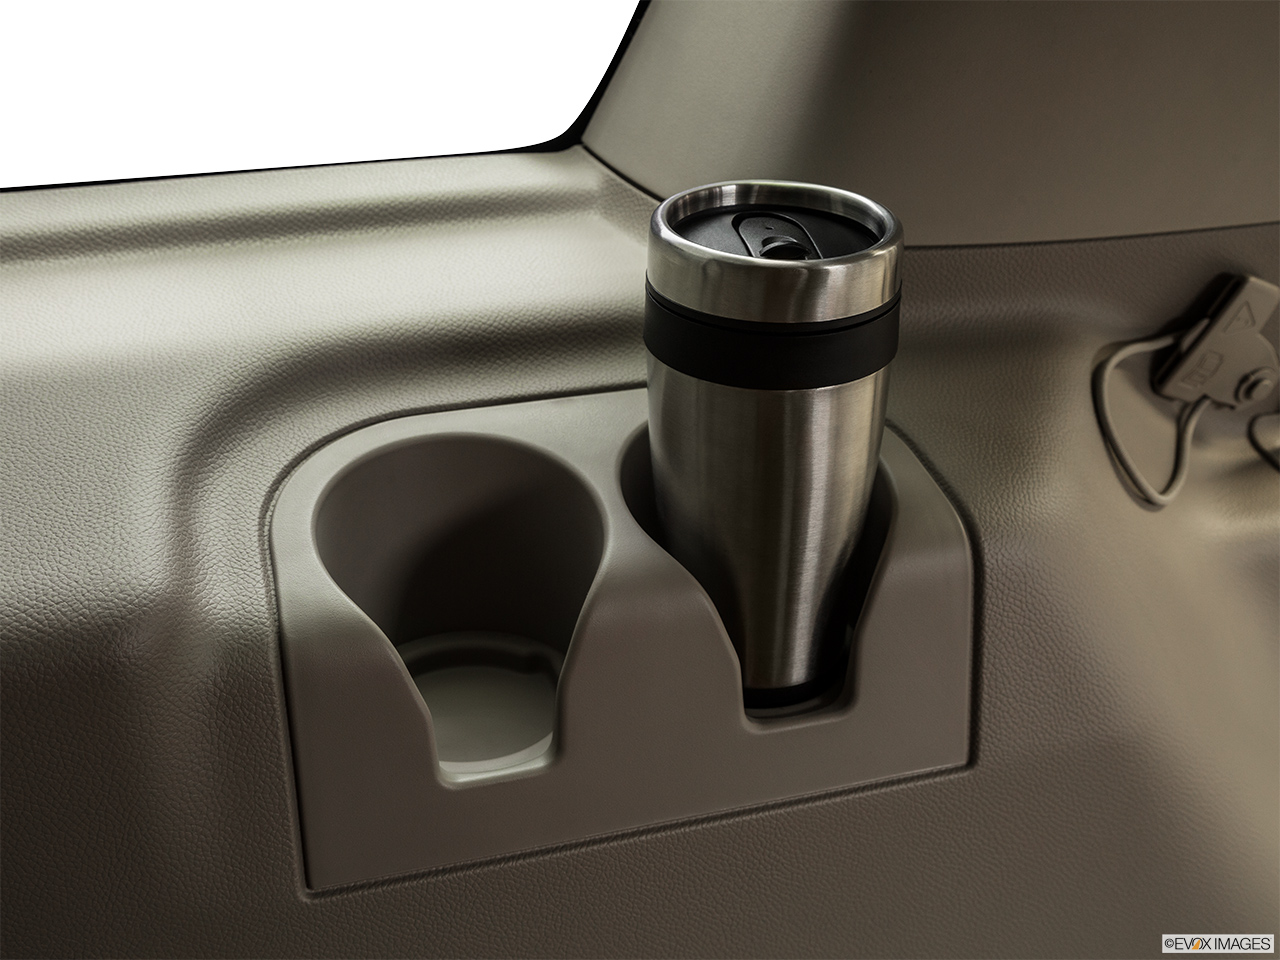 2015 Lincoln Navigator Base Third Row side cup holder with coffee prop.